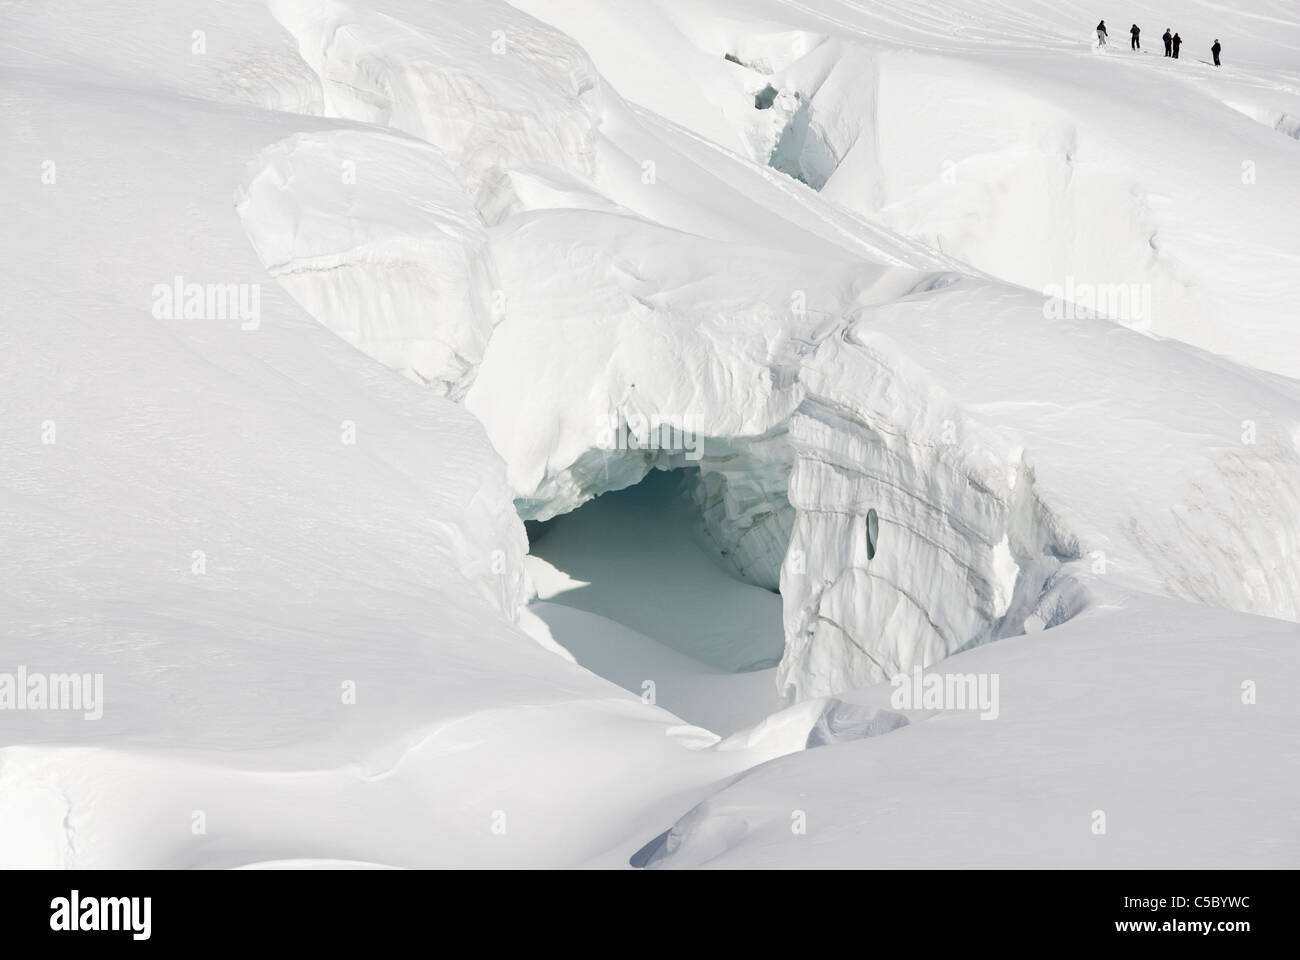 Distance shot of skiers with glaciers in foreground - Stock Image